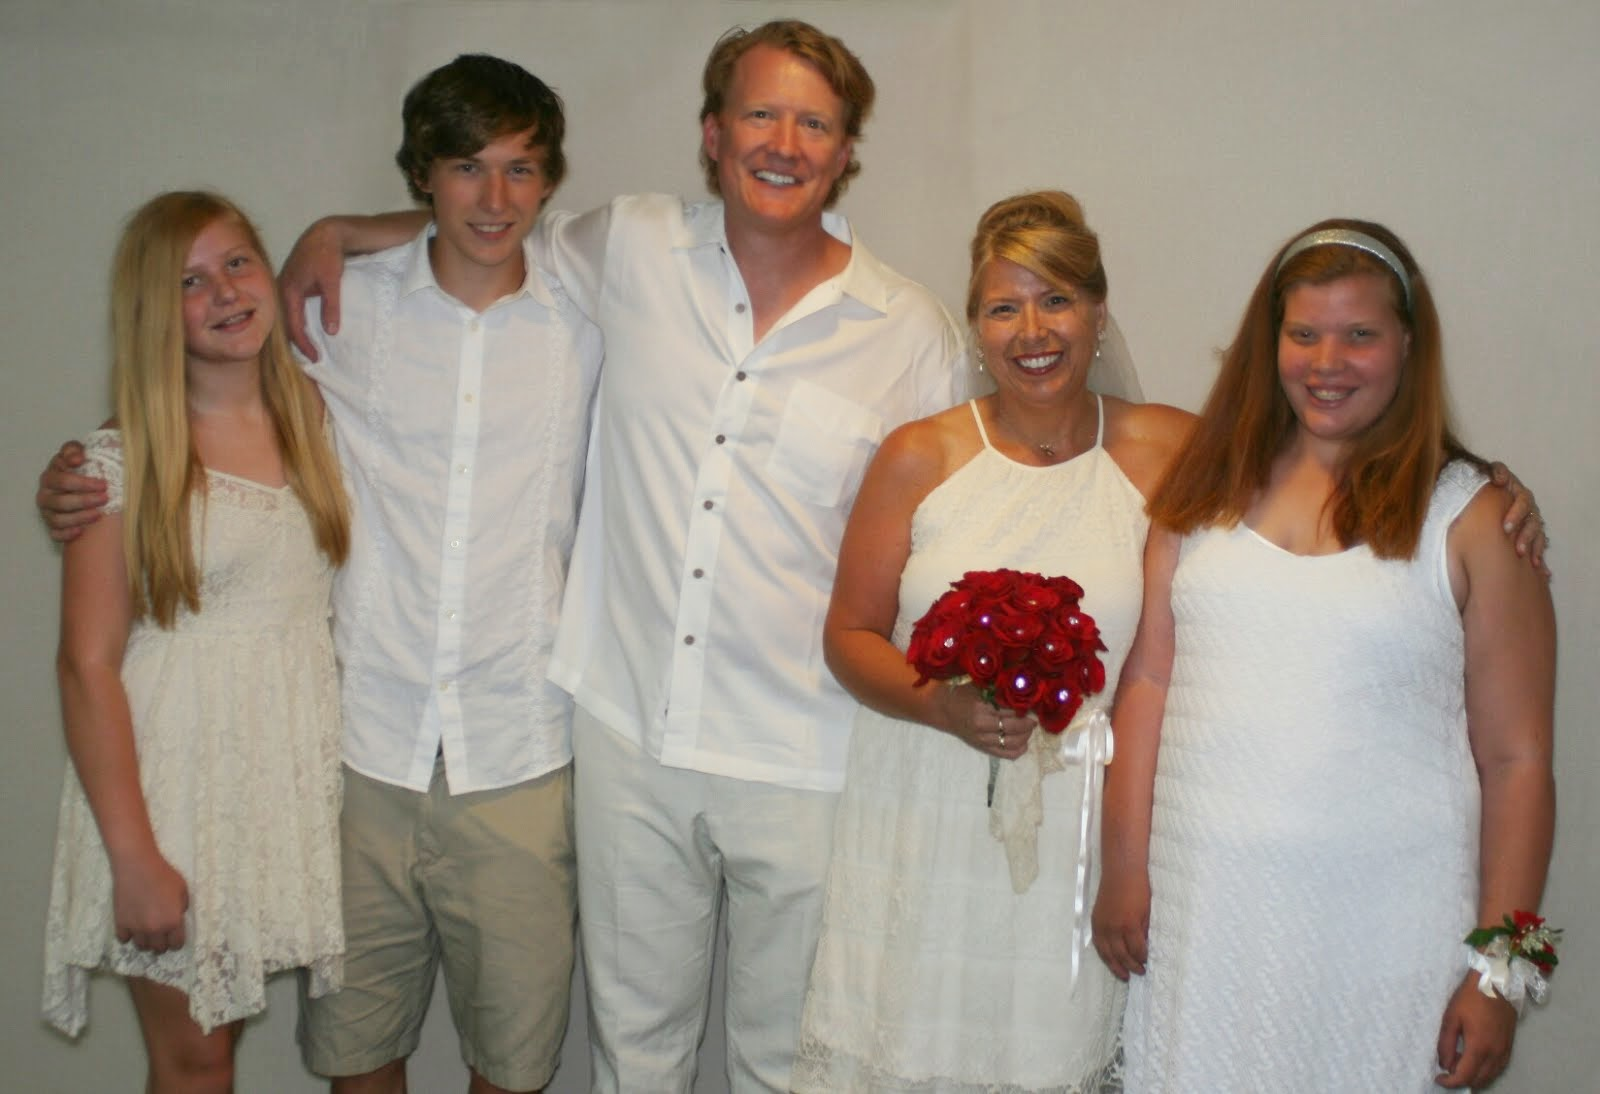 My family, at our 25th Wedding Anniversary, Renewal of Vows ceremony